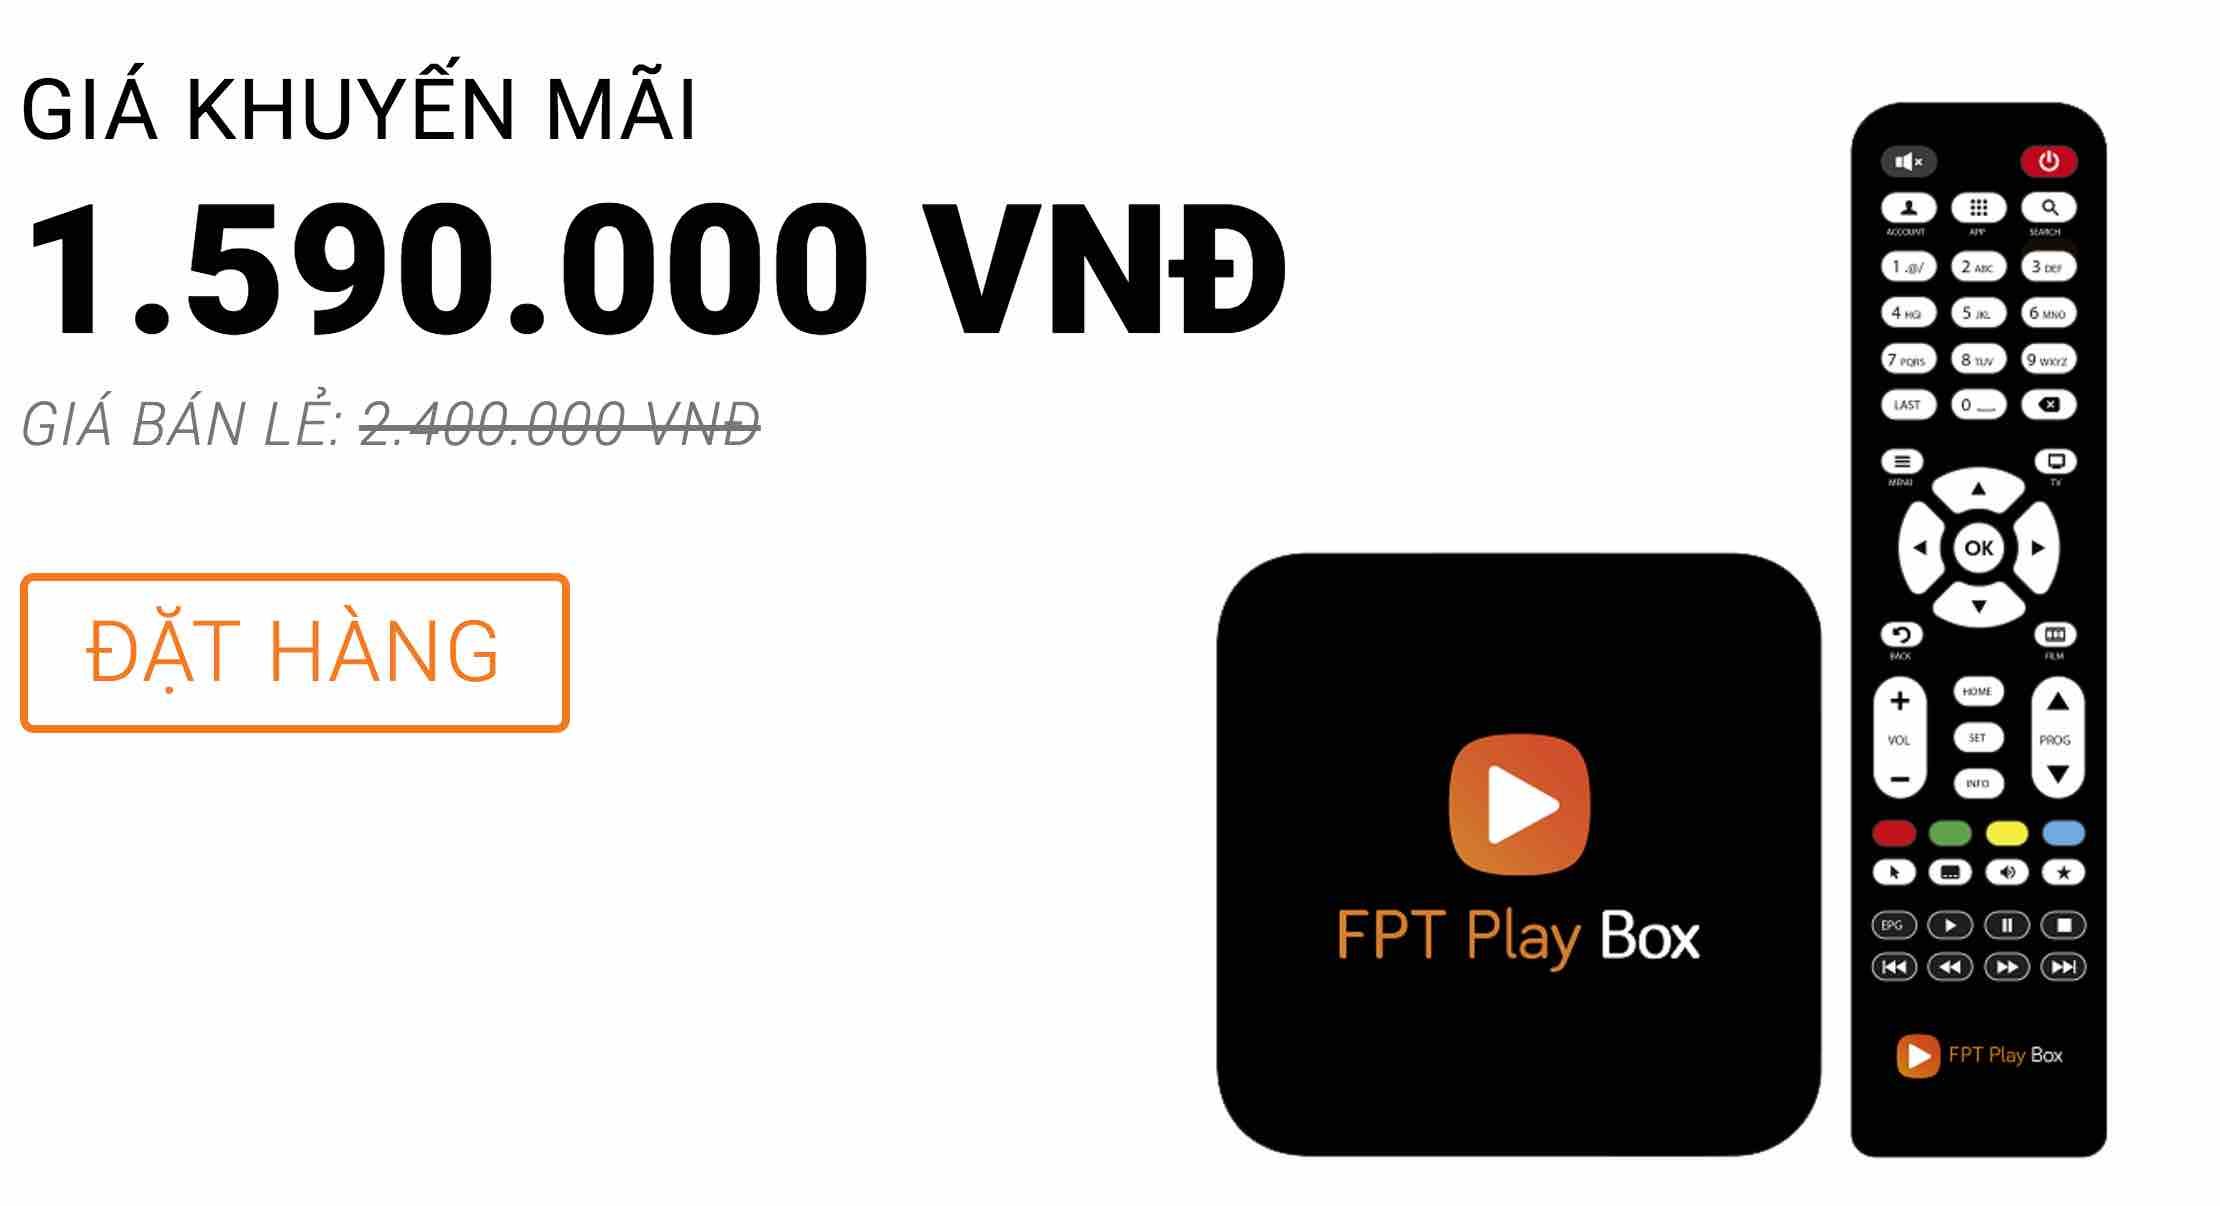 fpt play box 1